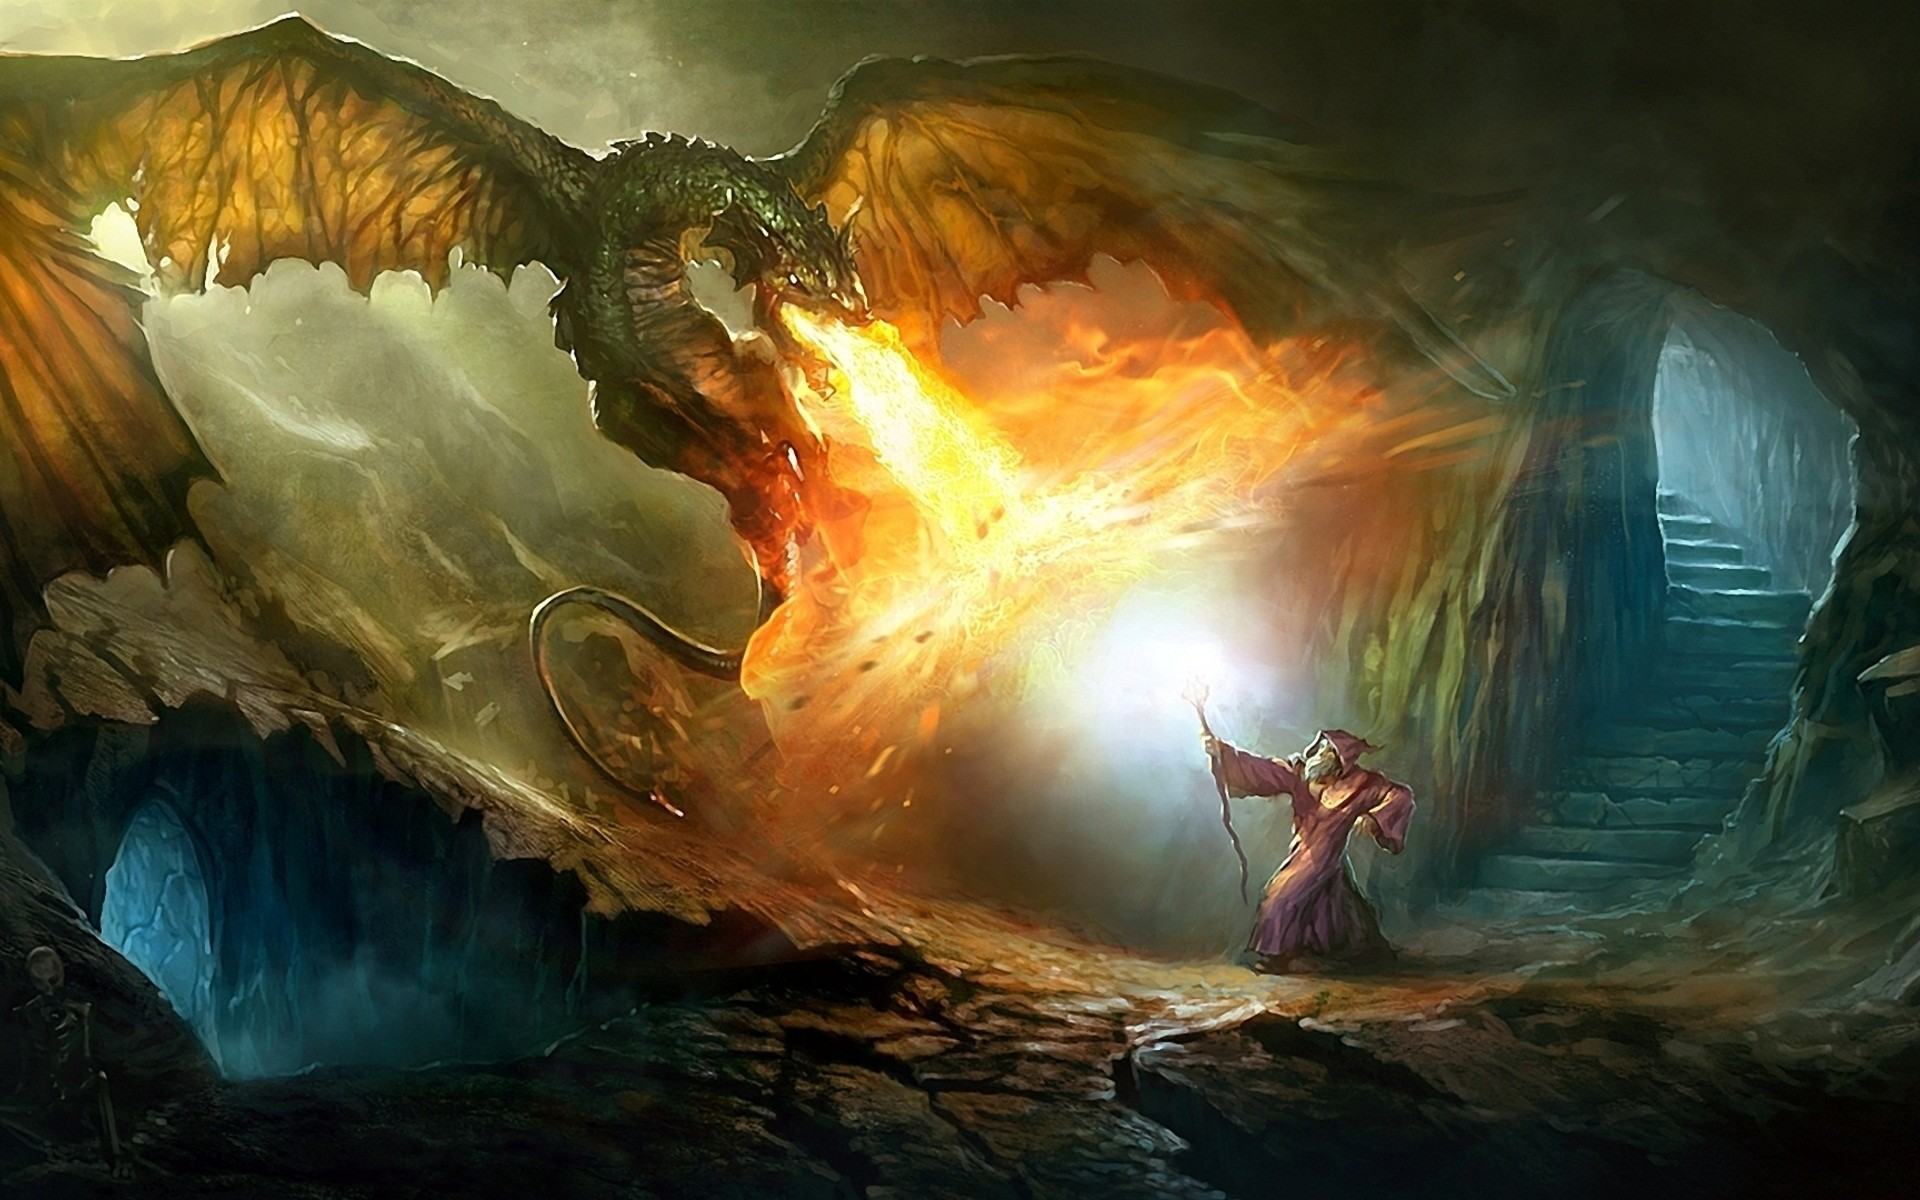 Wizards and dragons wallpapers 65 images - Dragon backgrounds 1920x1080 ...